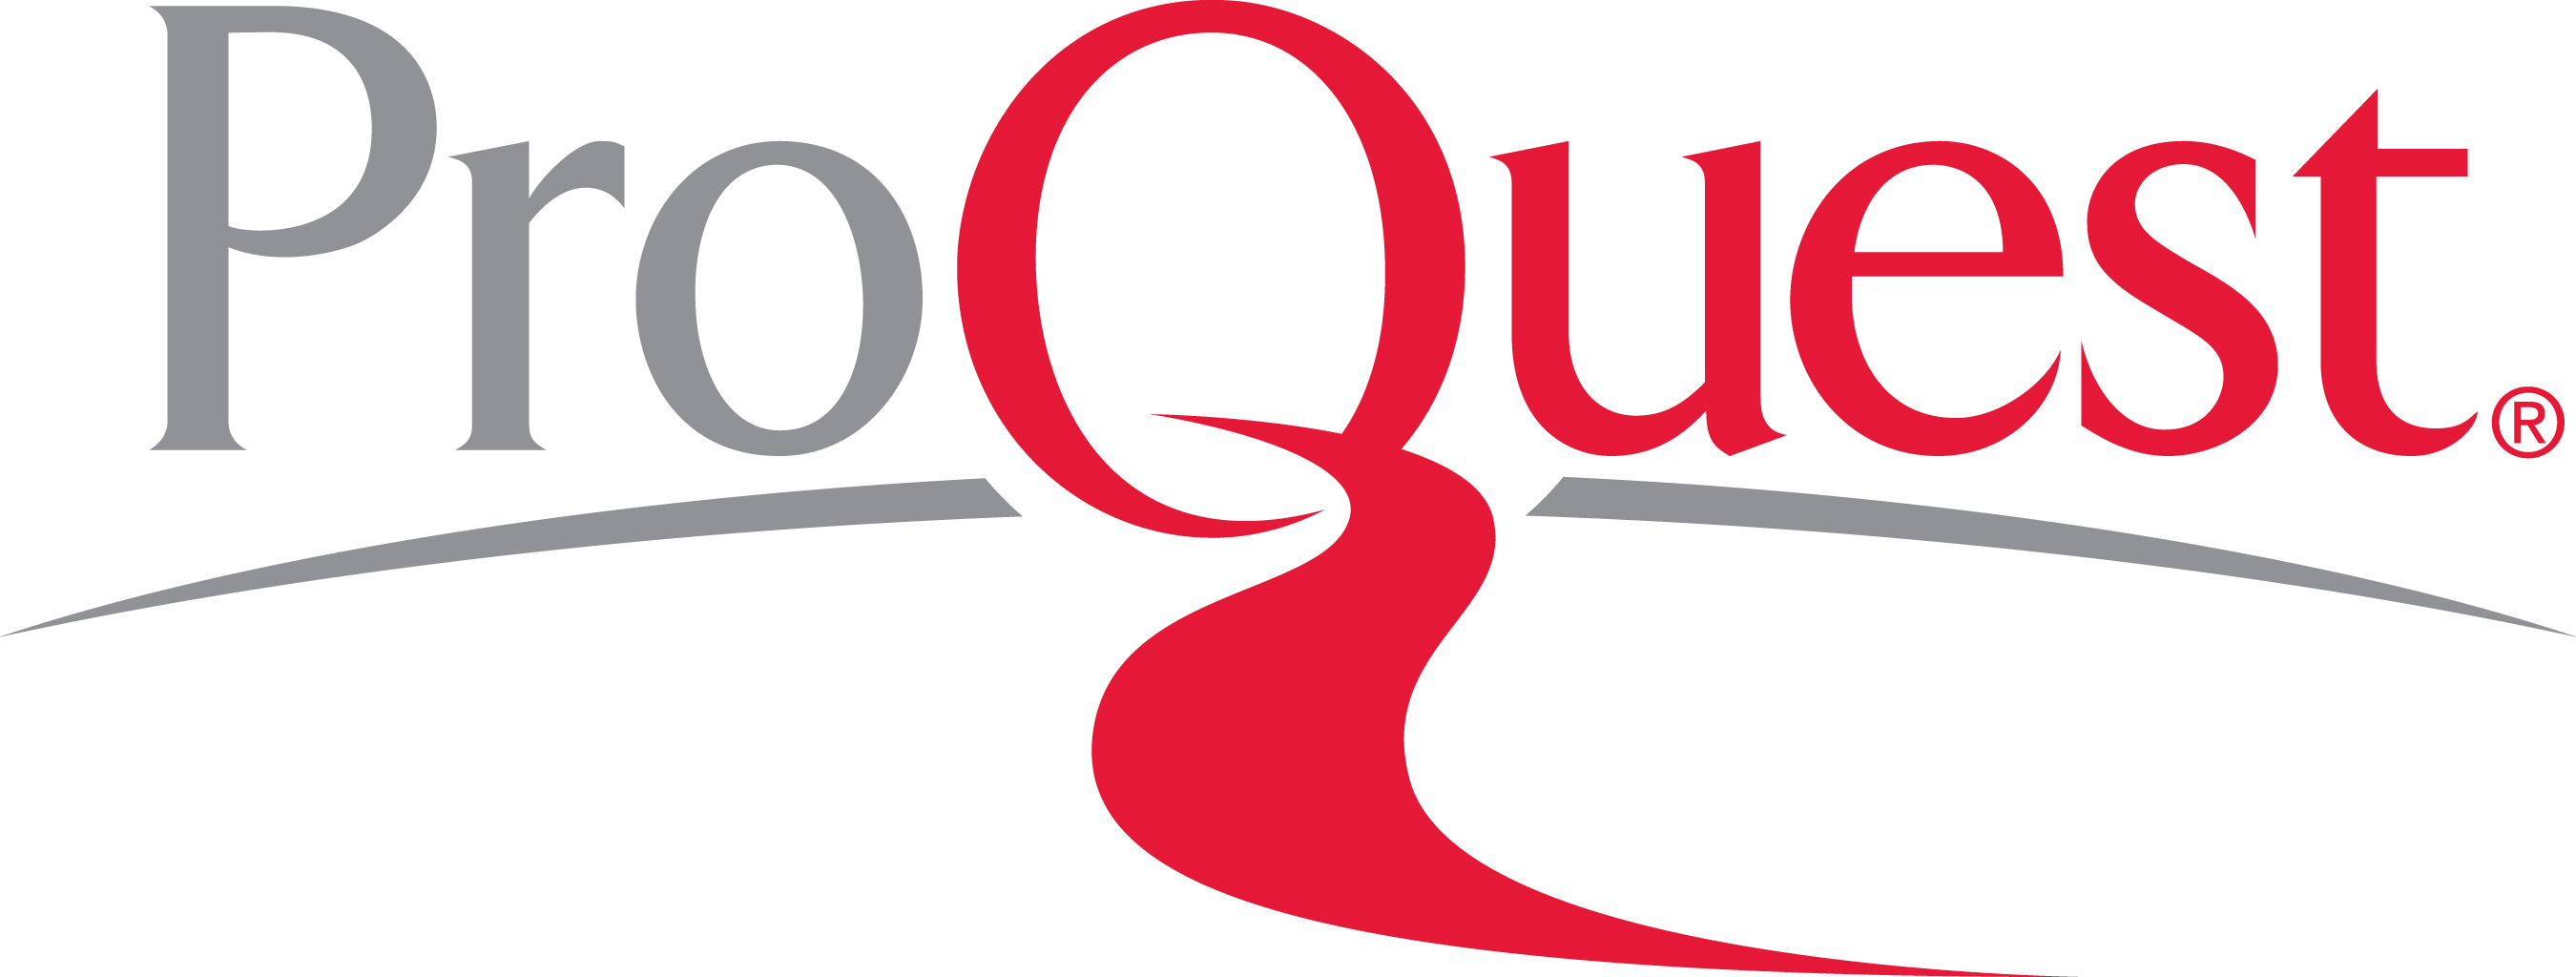 PROQUEST INFORMATION AND LEARNING LOGO